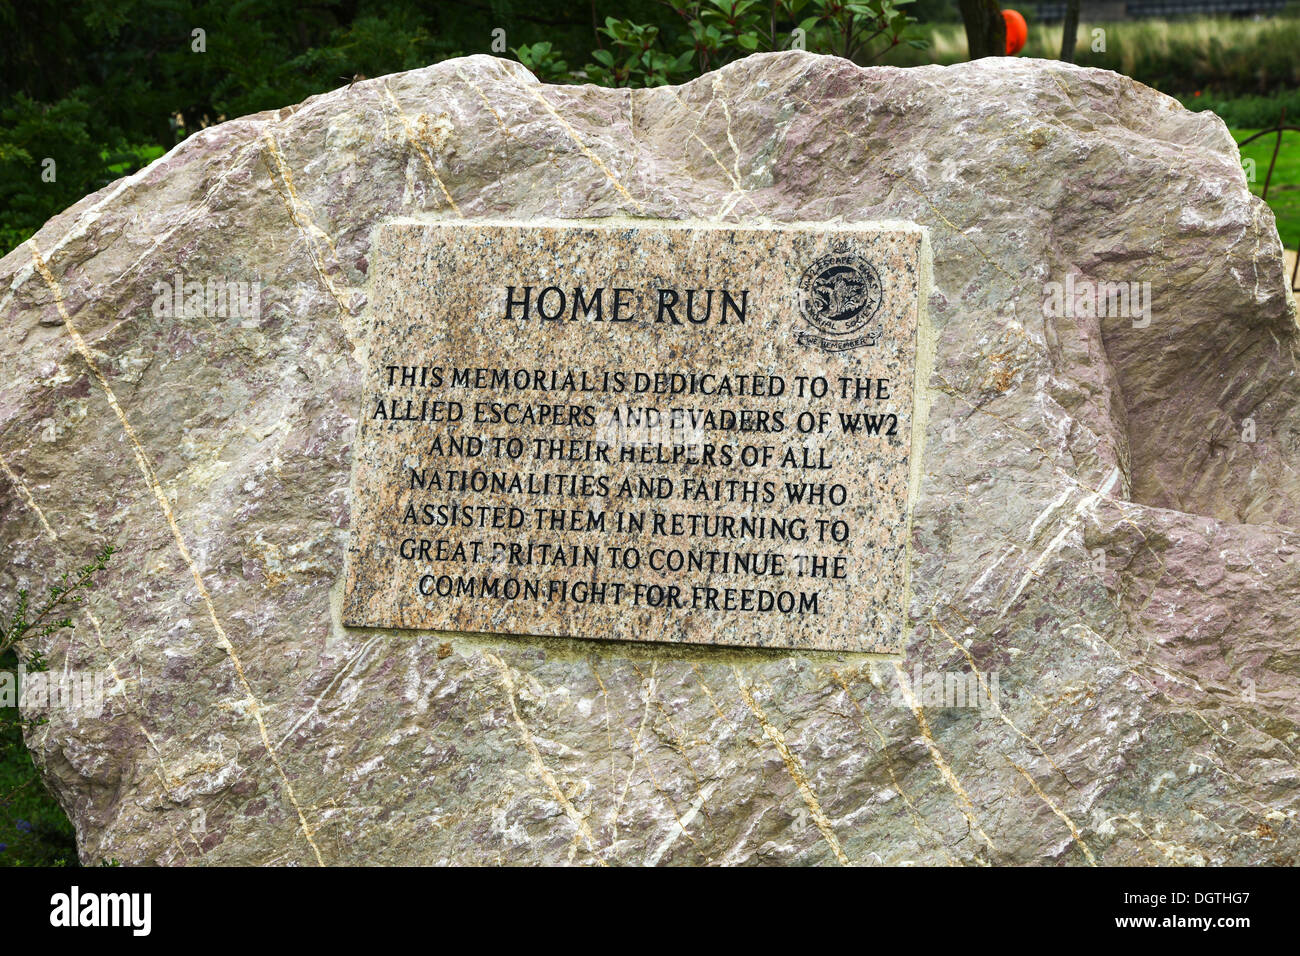 The Home Run memorial dedicated to allied escaper's and evaders of world war two at the National Memorial Arboretum, Alrewas, near Lichfield, England - Stock Image